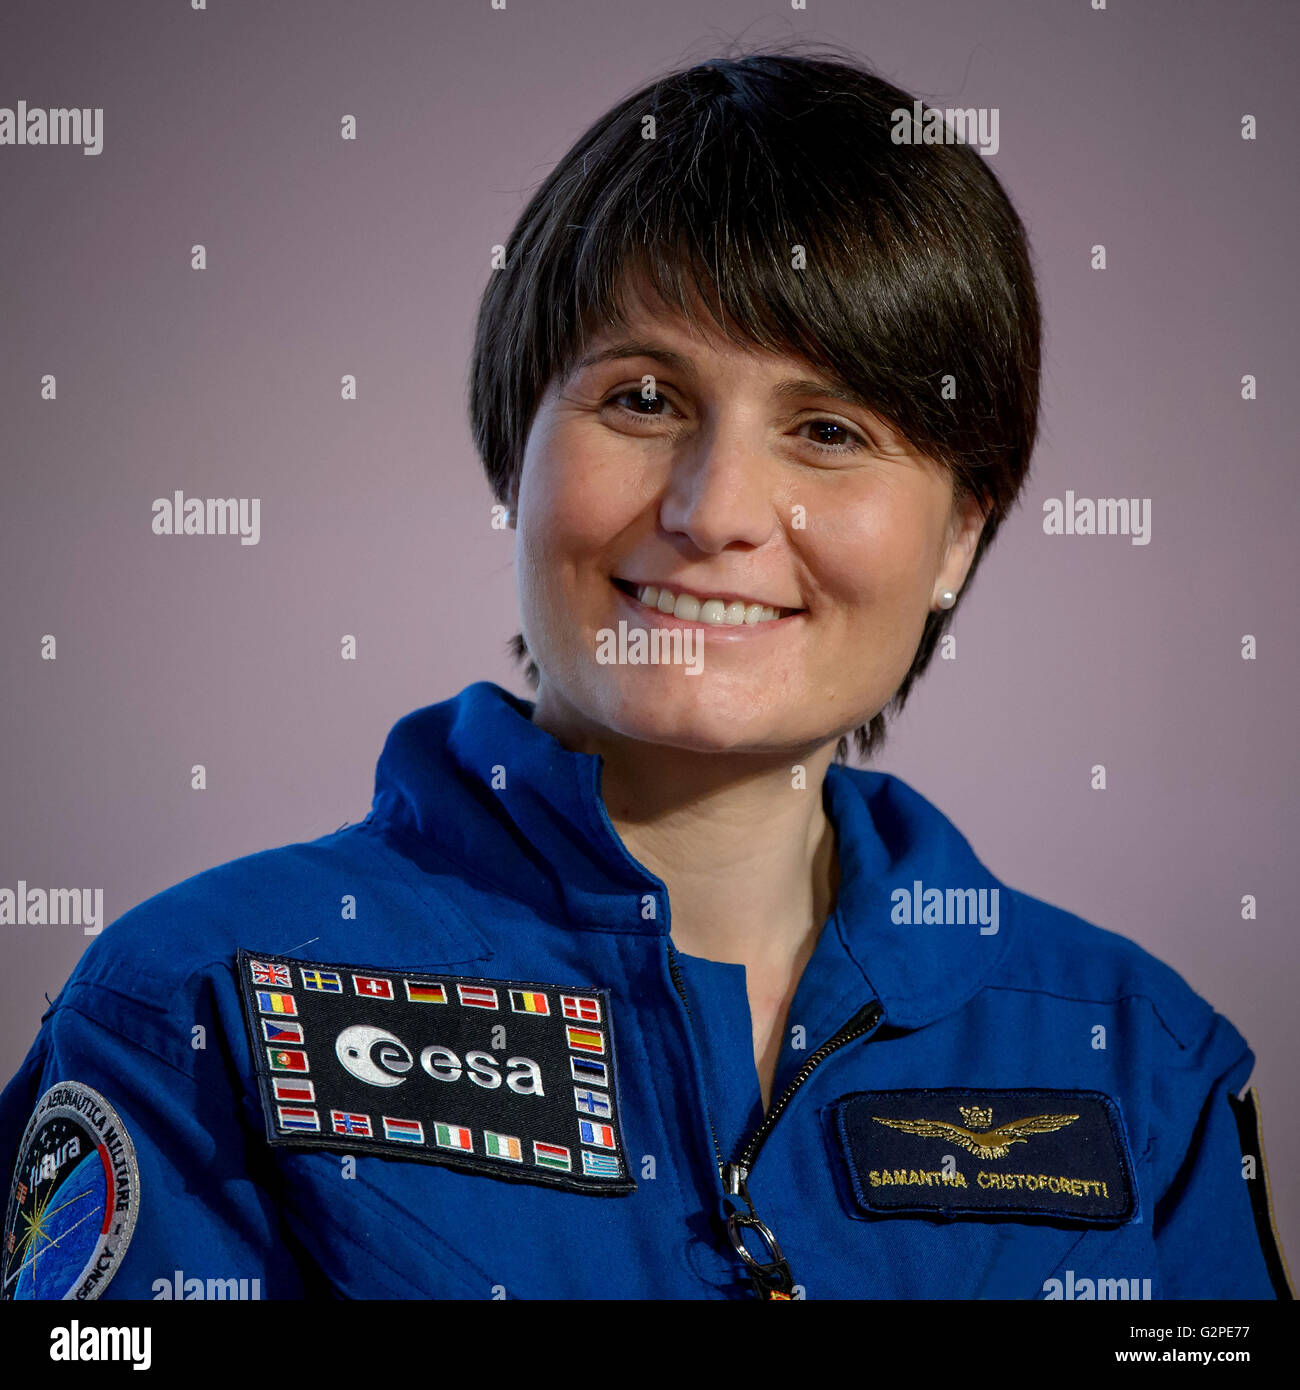 astronaut european space agency - photo #15